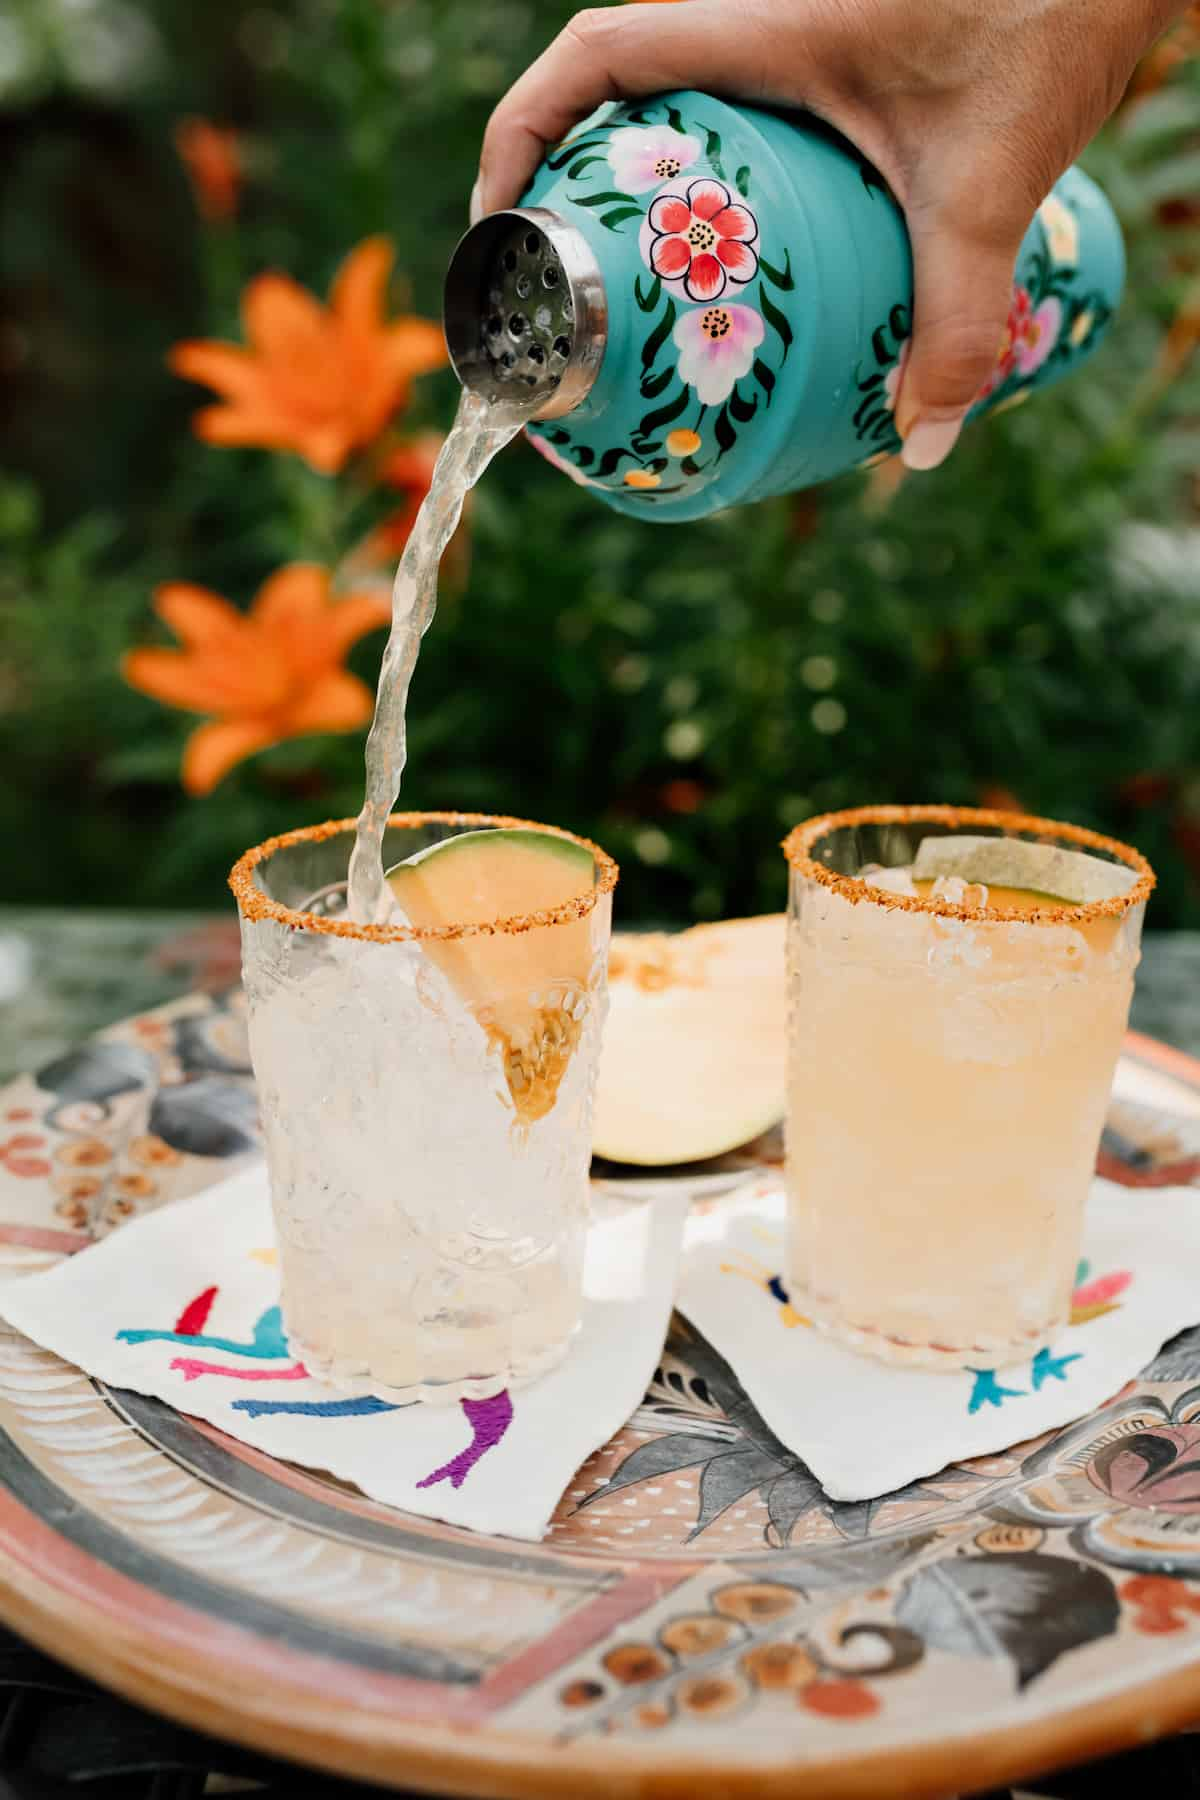 Cantaloupe Melon Margarita being poured into two glasses filled with ice